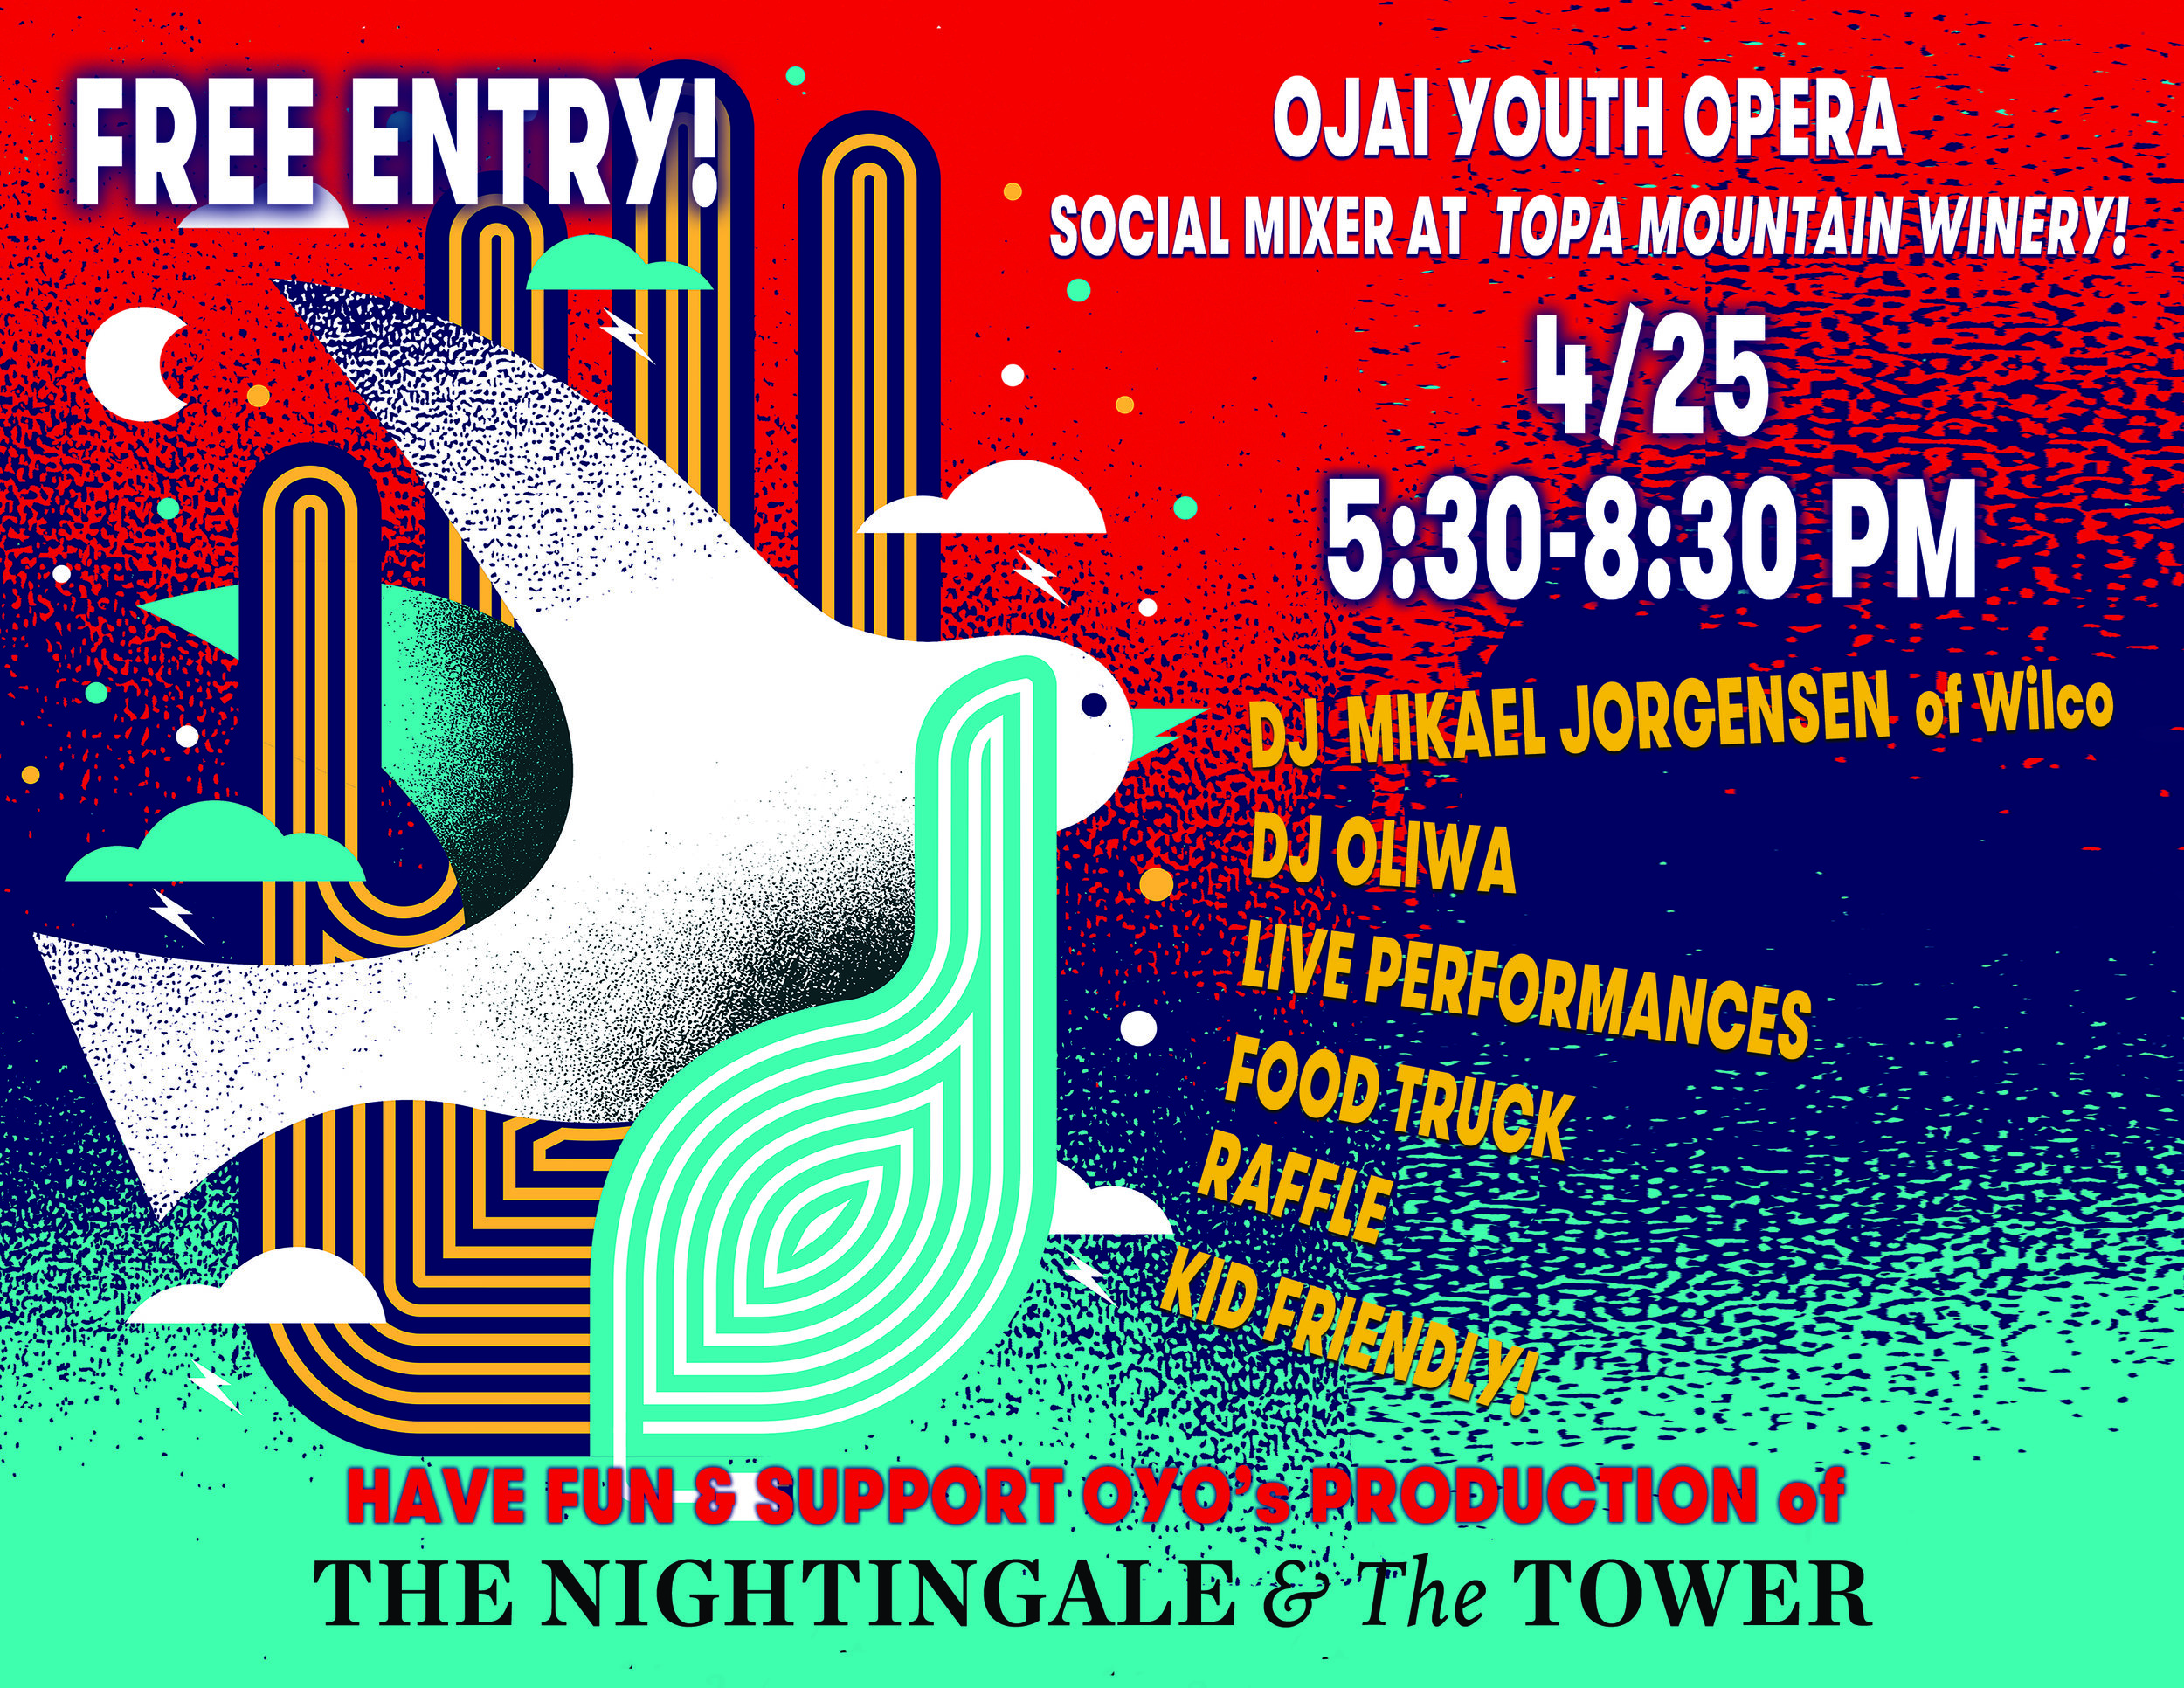 JOIN US at our first OYO Social Mixer on April 25th at TOPA MOUNTAIN WINERY, 821 W. Ojai Avenue. FUN FOR ALL AGES! Entry is FREE and you can help support our upcoming NIGHTINGALE & THE TOWER Production!